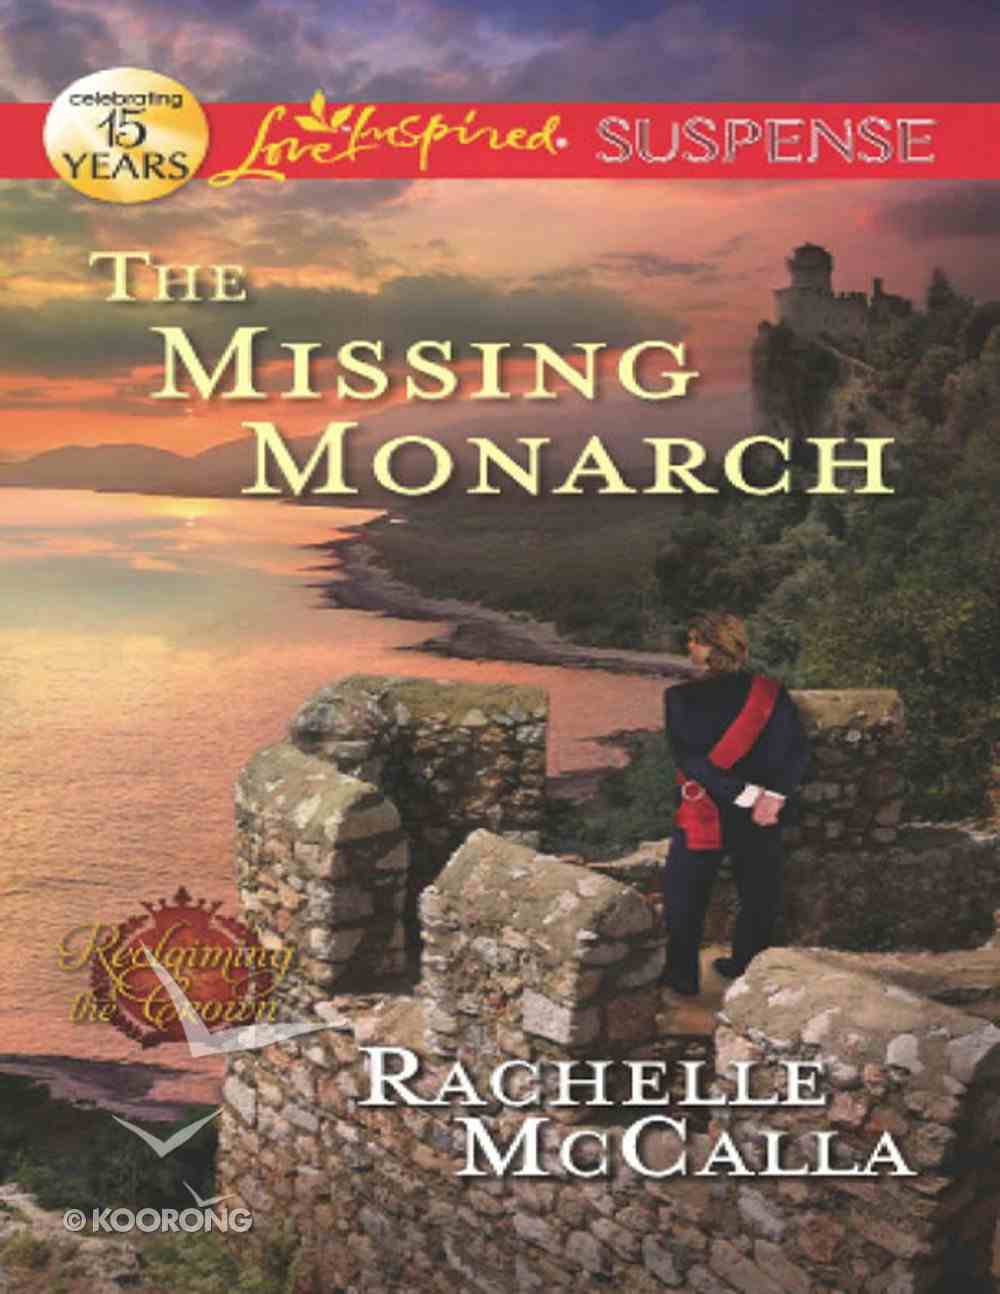 The Missing Monarch (Reclaiming the Crown) (Love Inspired Suspense Series) eBook